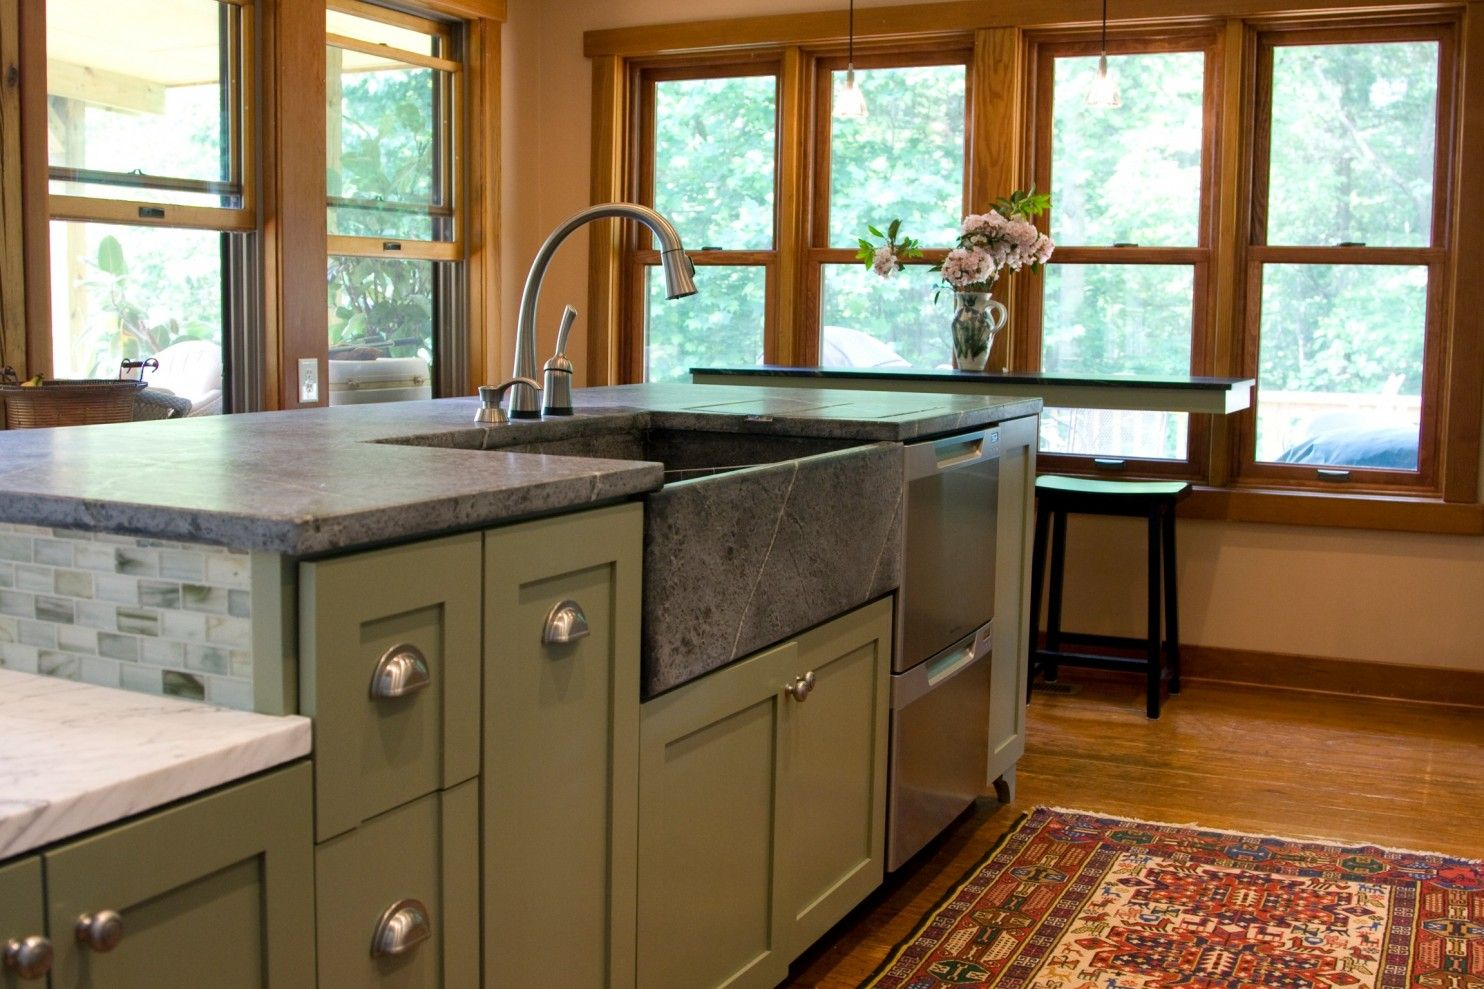 Durable Soapstone Countertops A Versatile Design Option